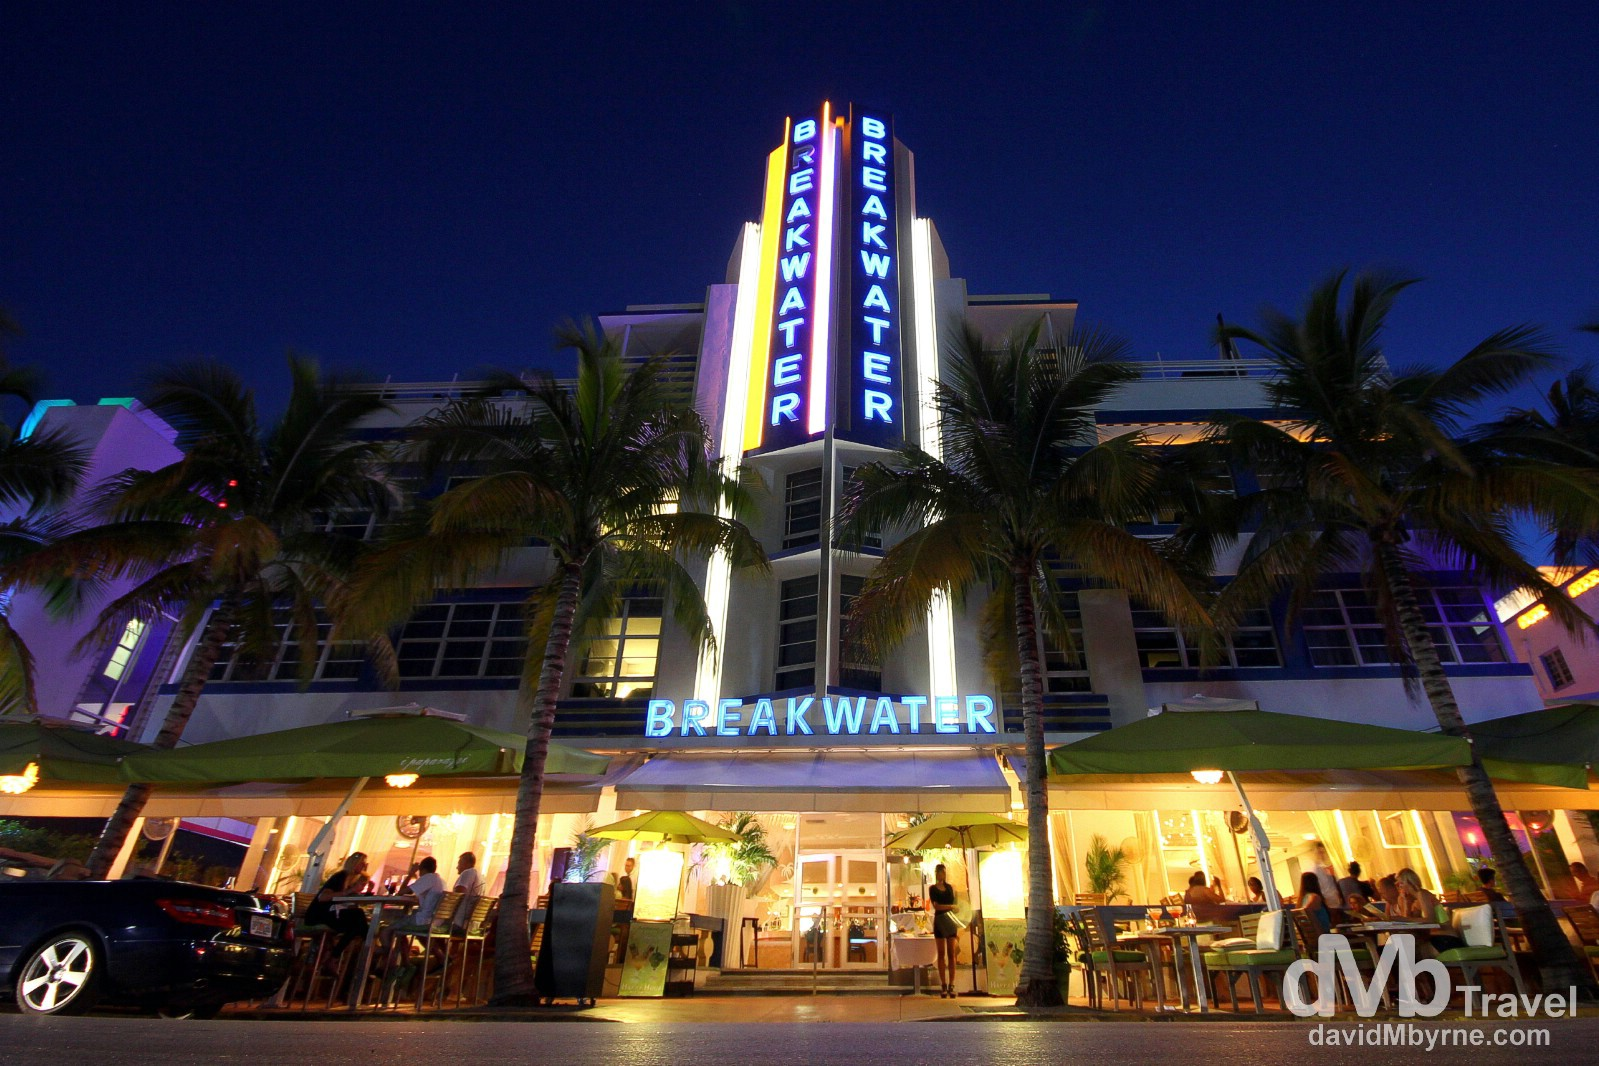 Breakwater Hotel Miami Beach Florida Usa Worldwide Destination Photography Insights